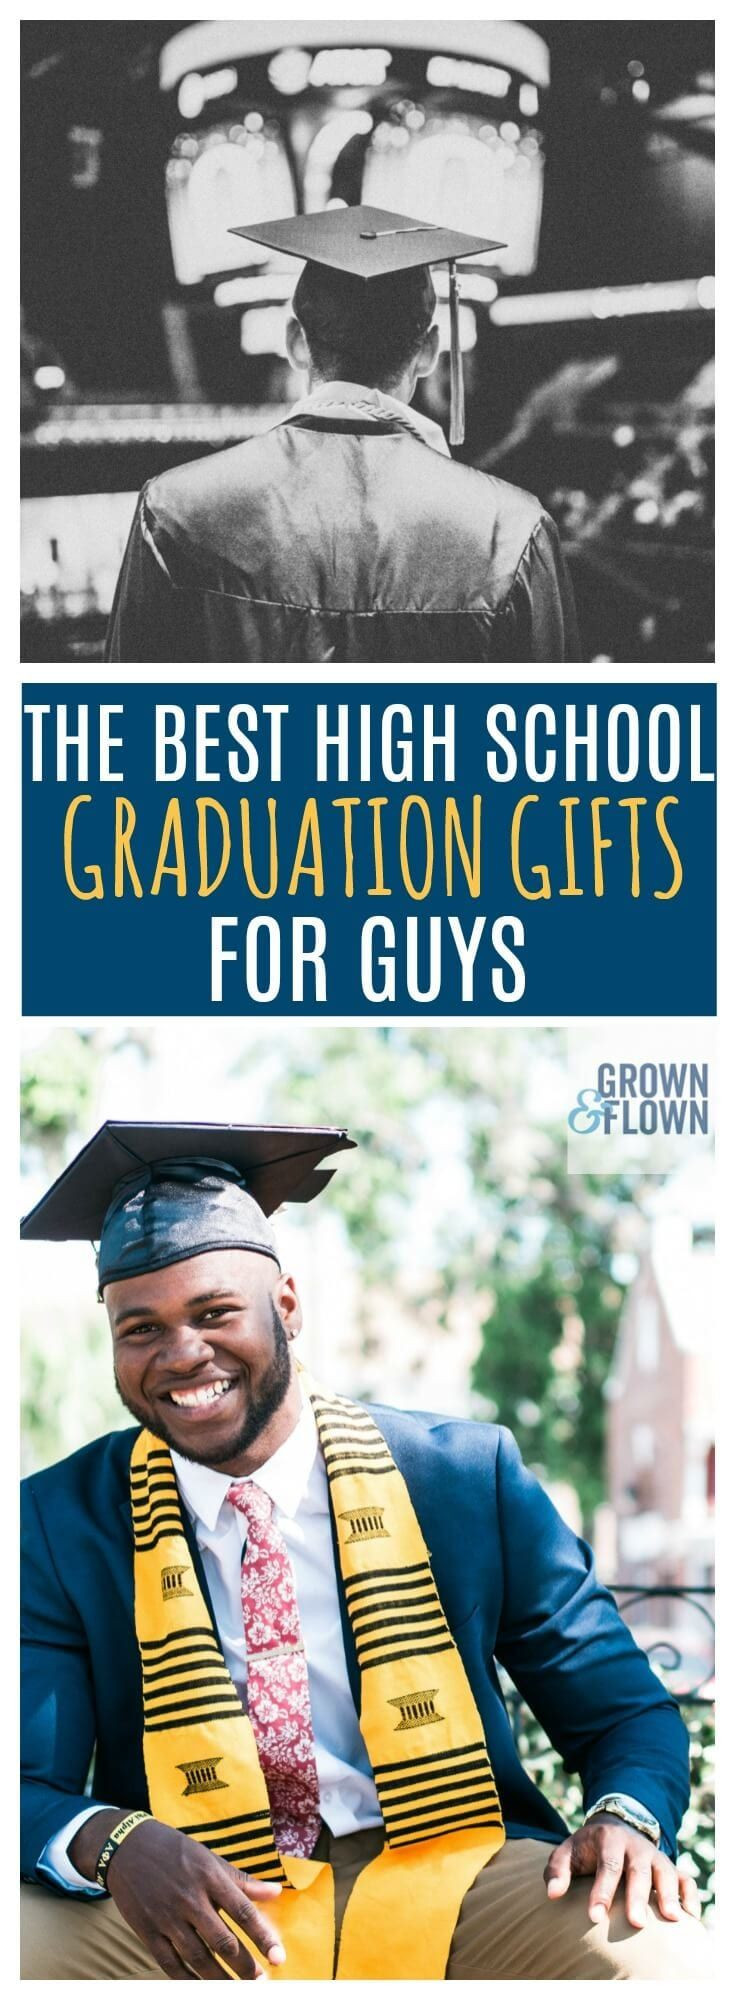 Top Graduation Gift Ideas For Senior Graduates  2020 High School Graduation Gifts for Guys They Will Love